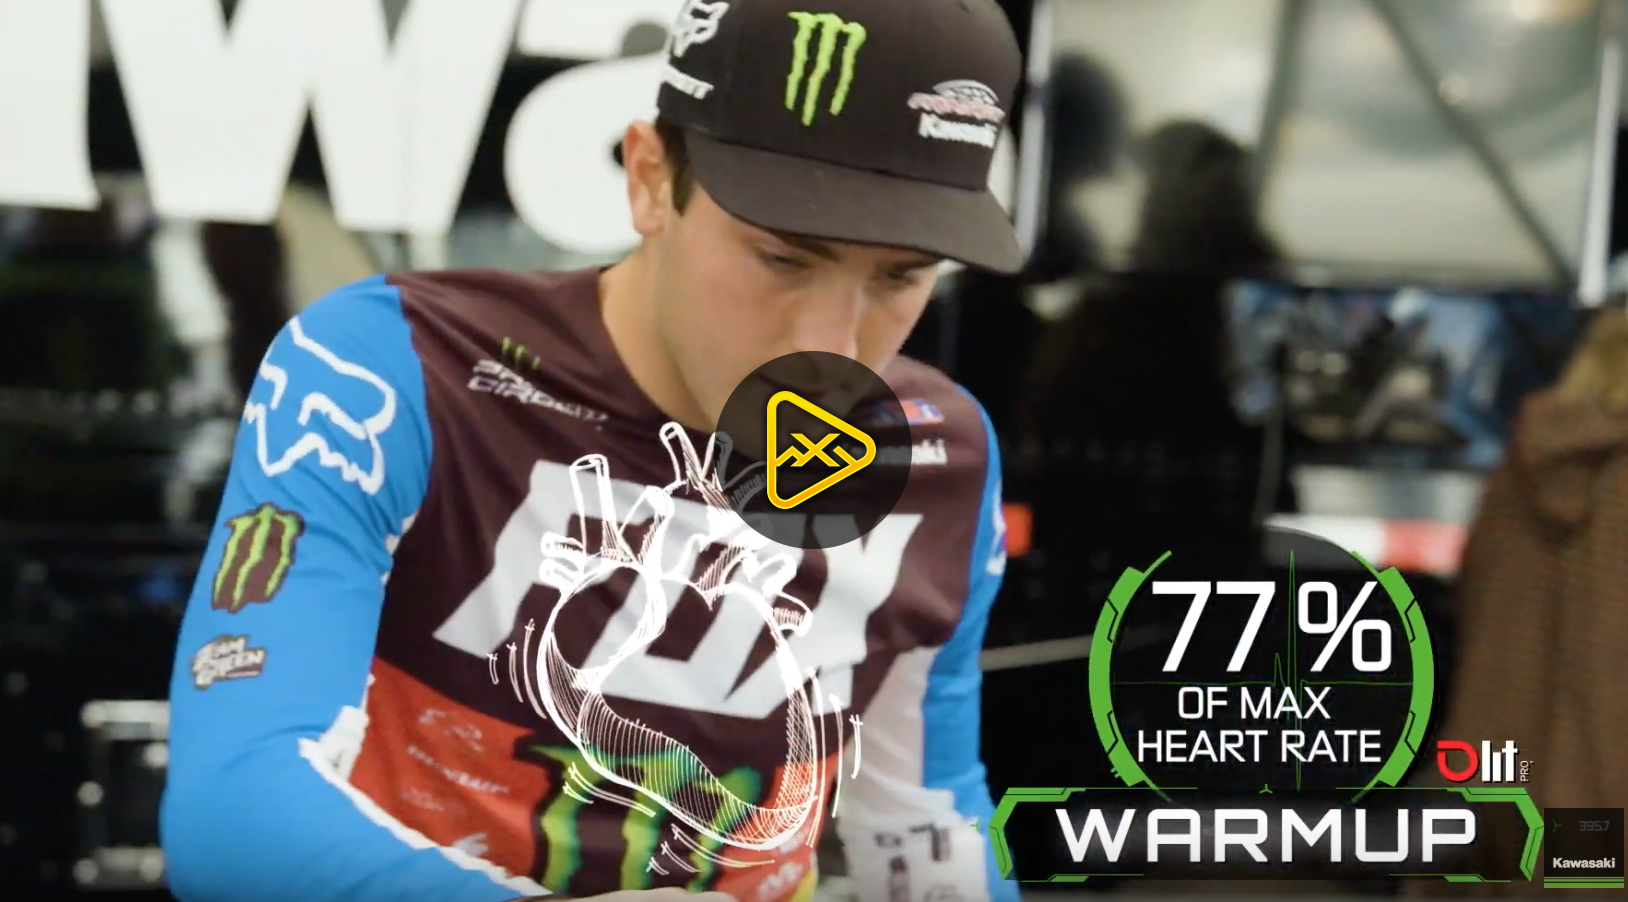 Science of Supercross – Ep 58 – Heart Rate